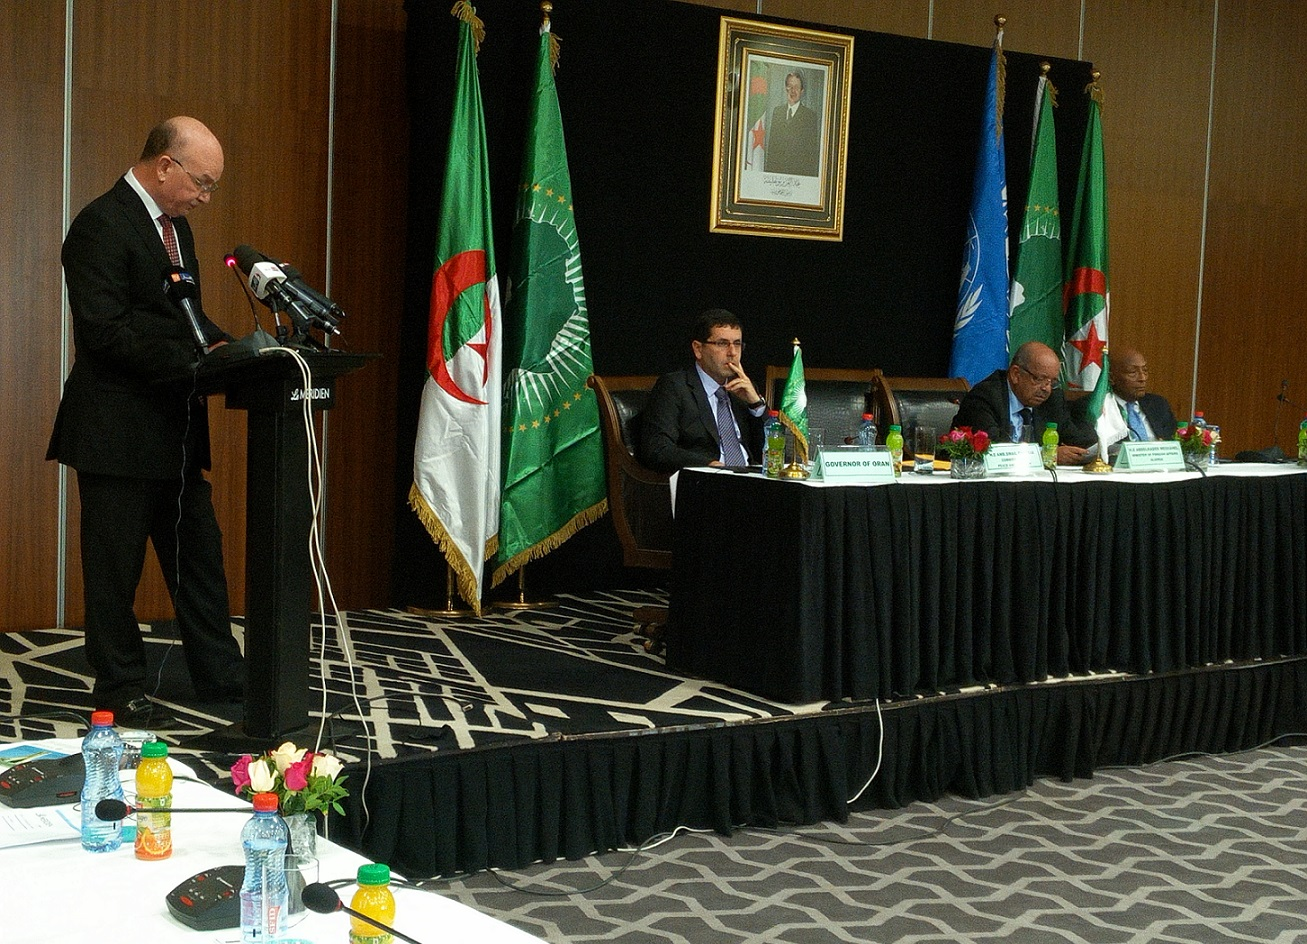 """Opening Statement by Ambassador Smaïl Chergui, AU Commissioner for Peace and Security:  High-level Forum on """"Effective and Sustainable counterterrorism responses: a regional approach"""" 10-11 December 2017, Oran, Algeria"""